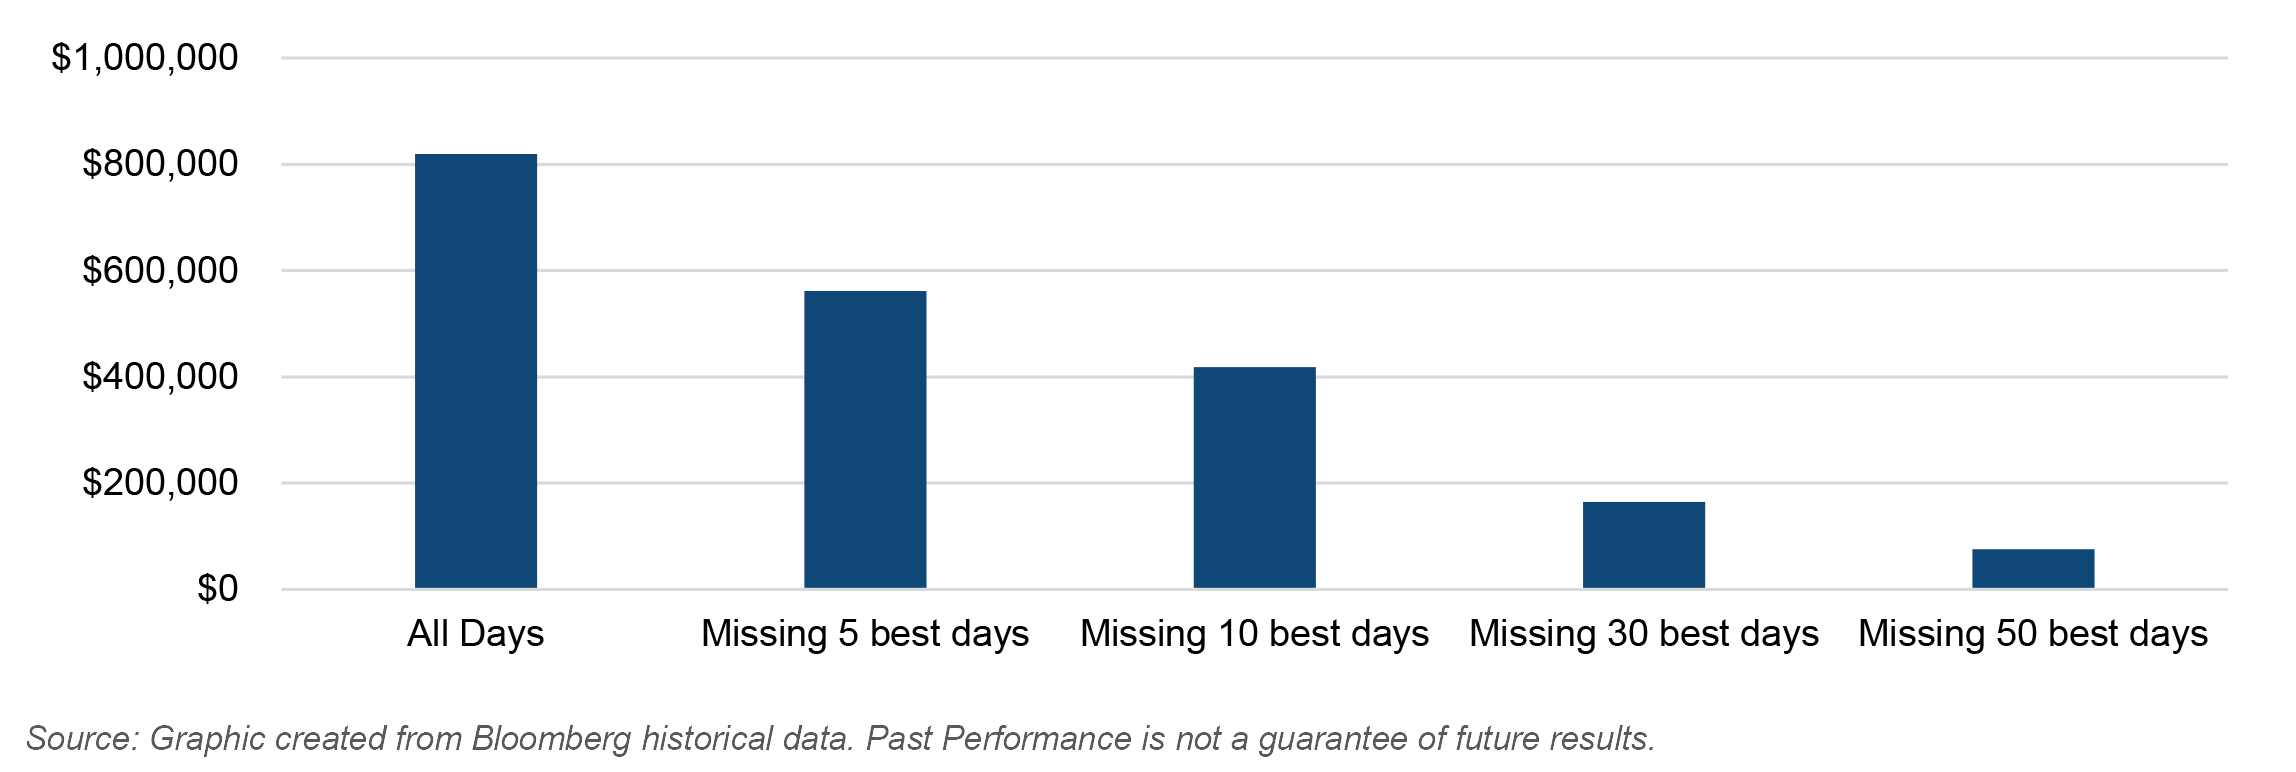 Graph showing the impact of missing the best return days of $10,000 invested in the S&P 500